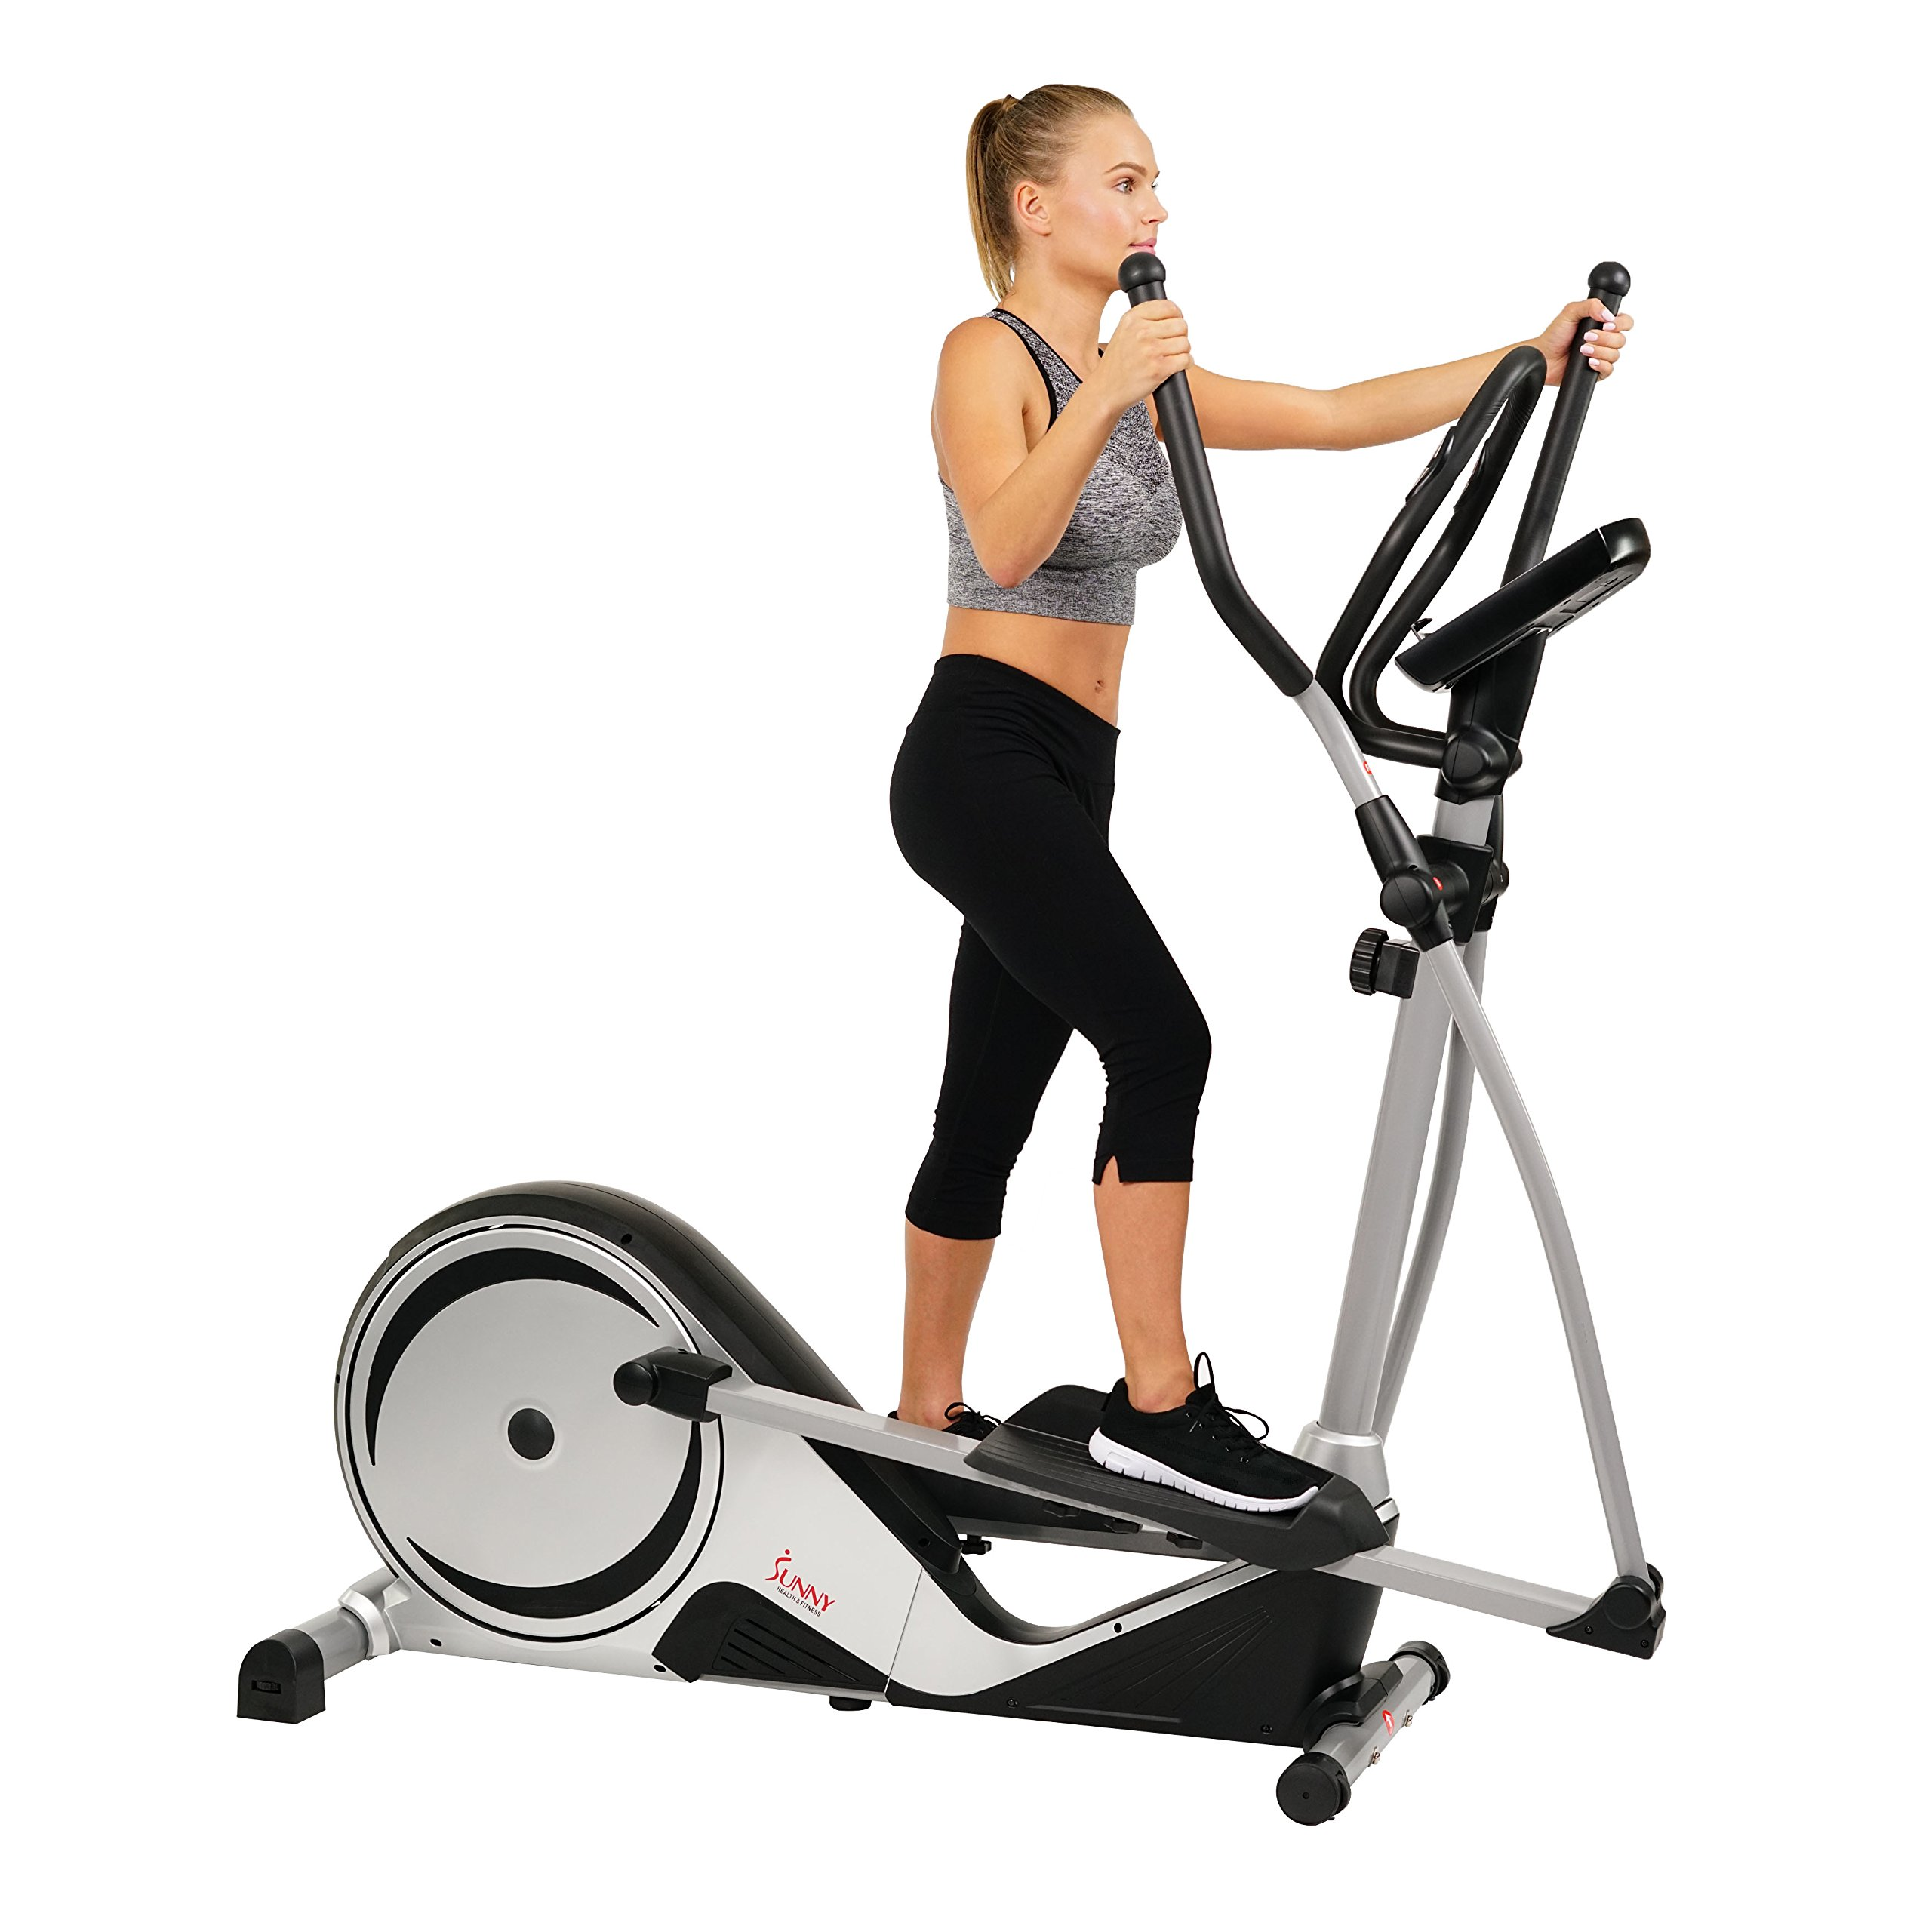 Sunny Health & Fitness Magnetic Elliptical Trainer Machine w/ LCD Monitor, Adjustable Stride, Heart Rate Monitor - SF-E3617